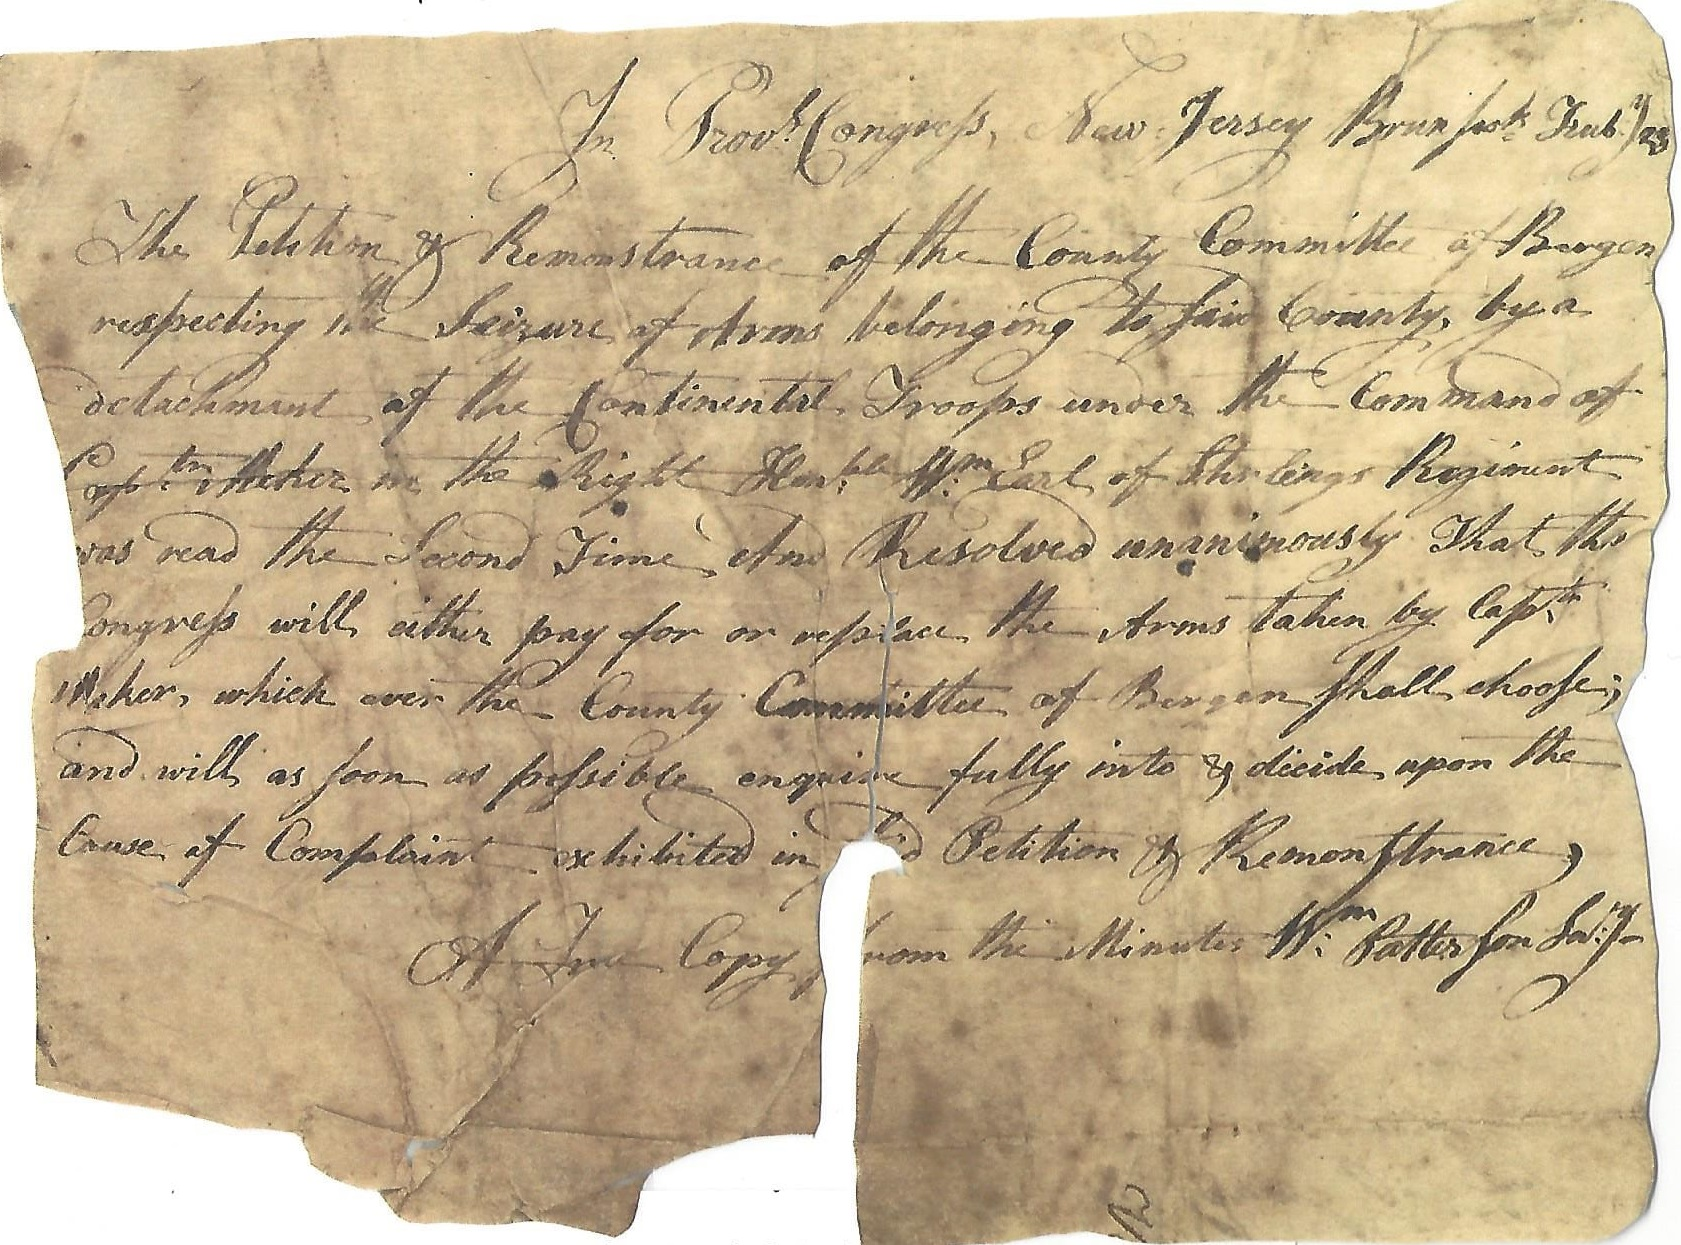 Document written and signed by William Paterson 1776, Secretary of the Provincial Congress - (Vreeland Papers)